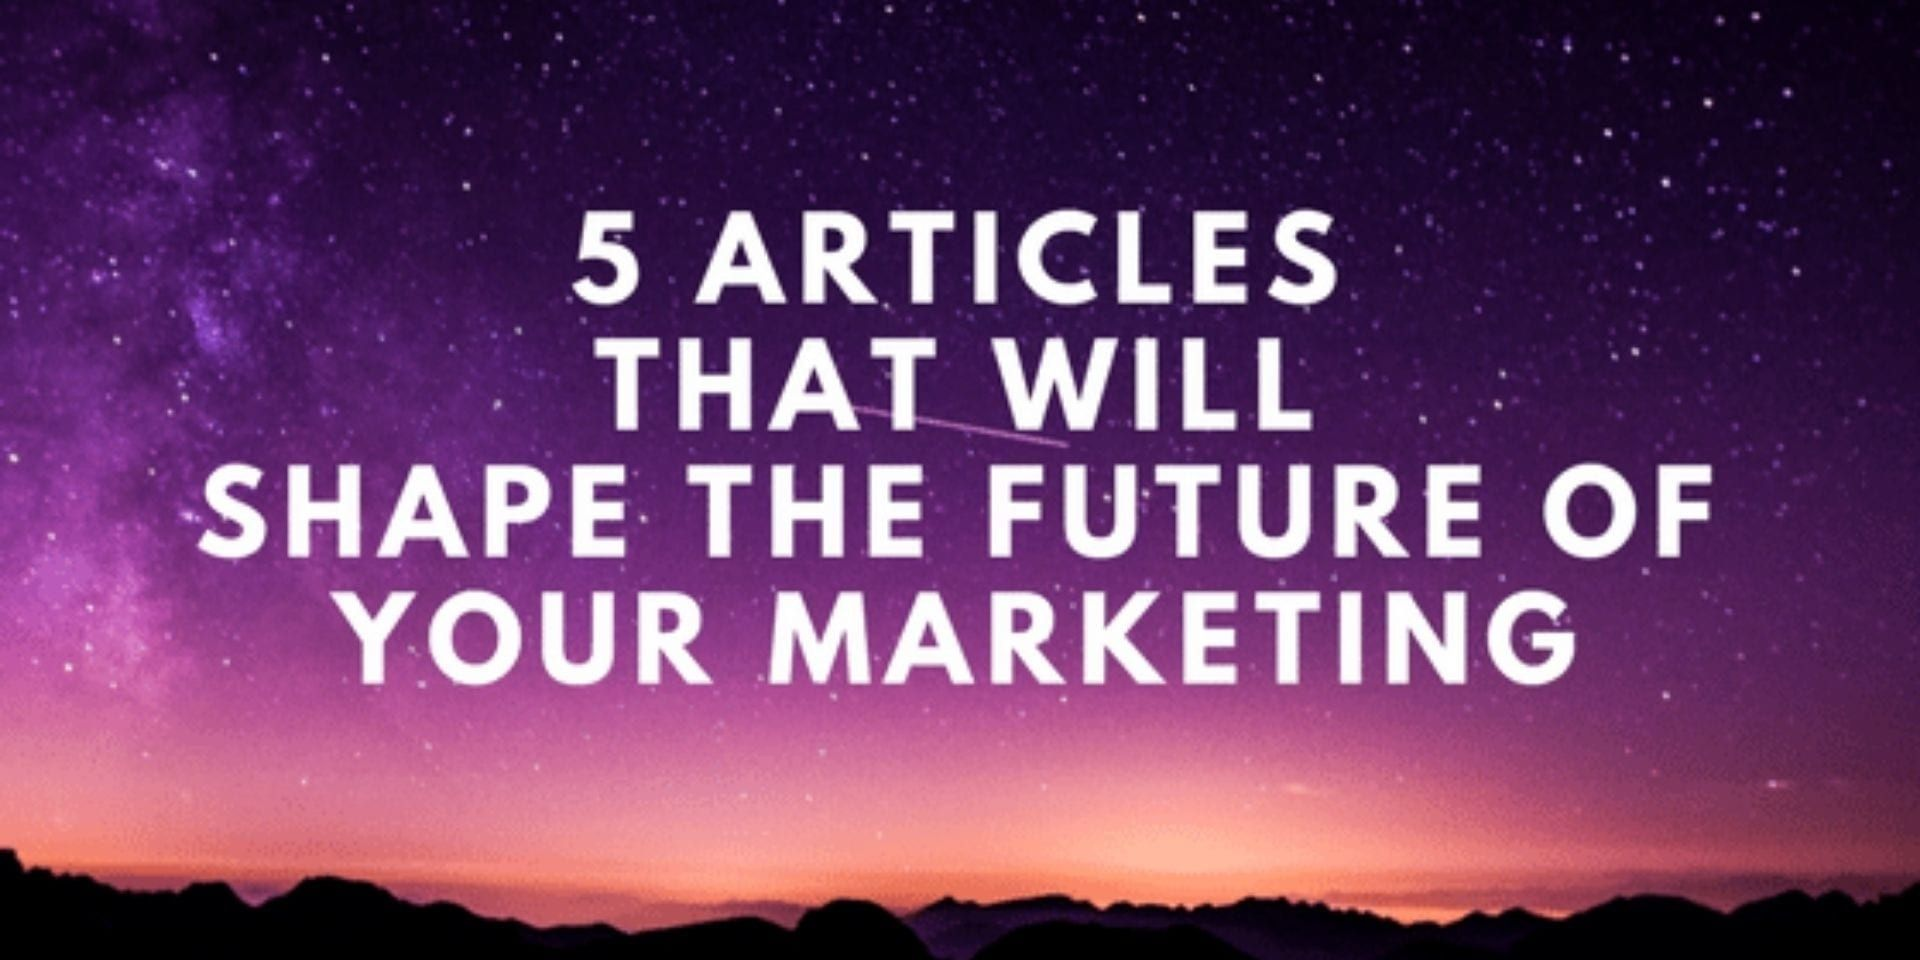 Trends that will affect the future of marketing